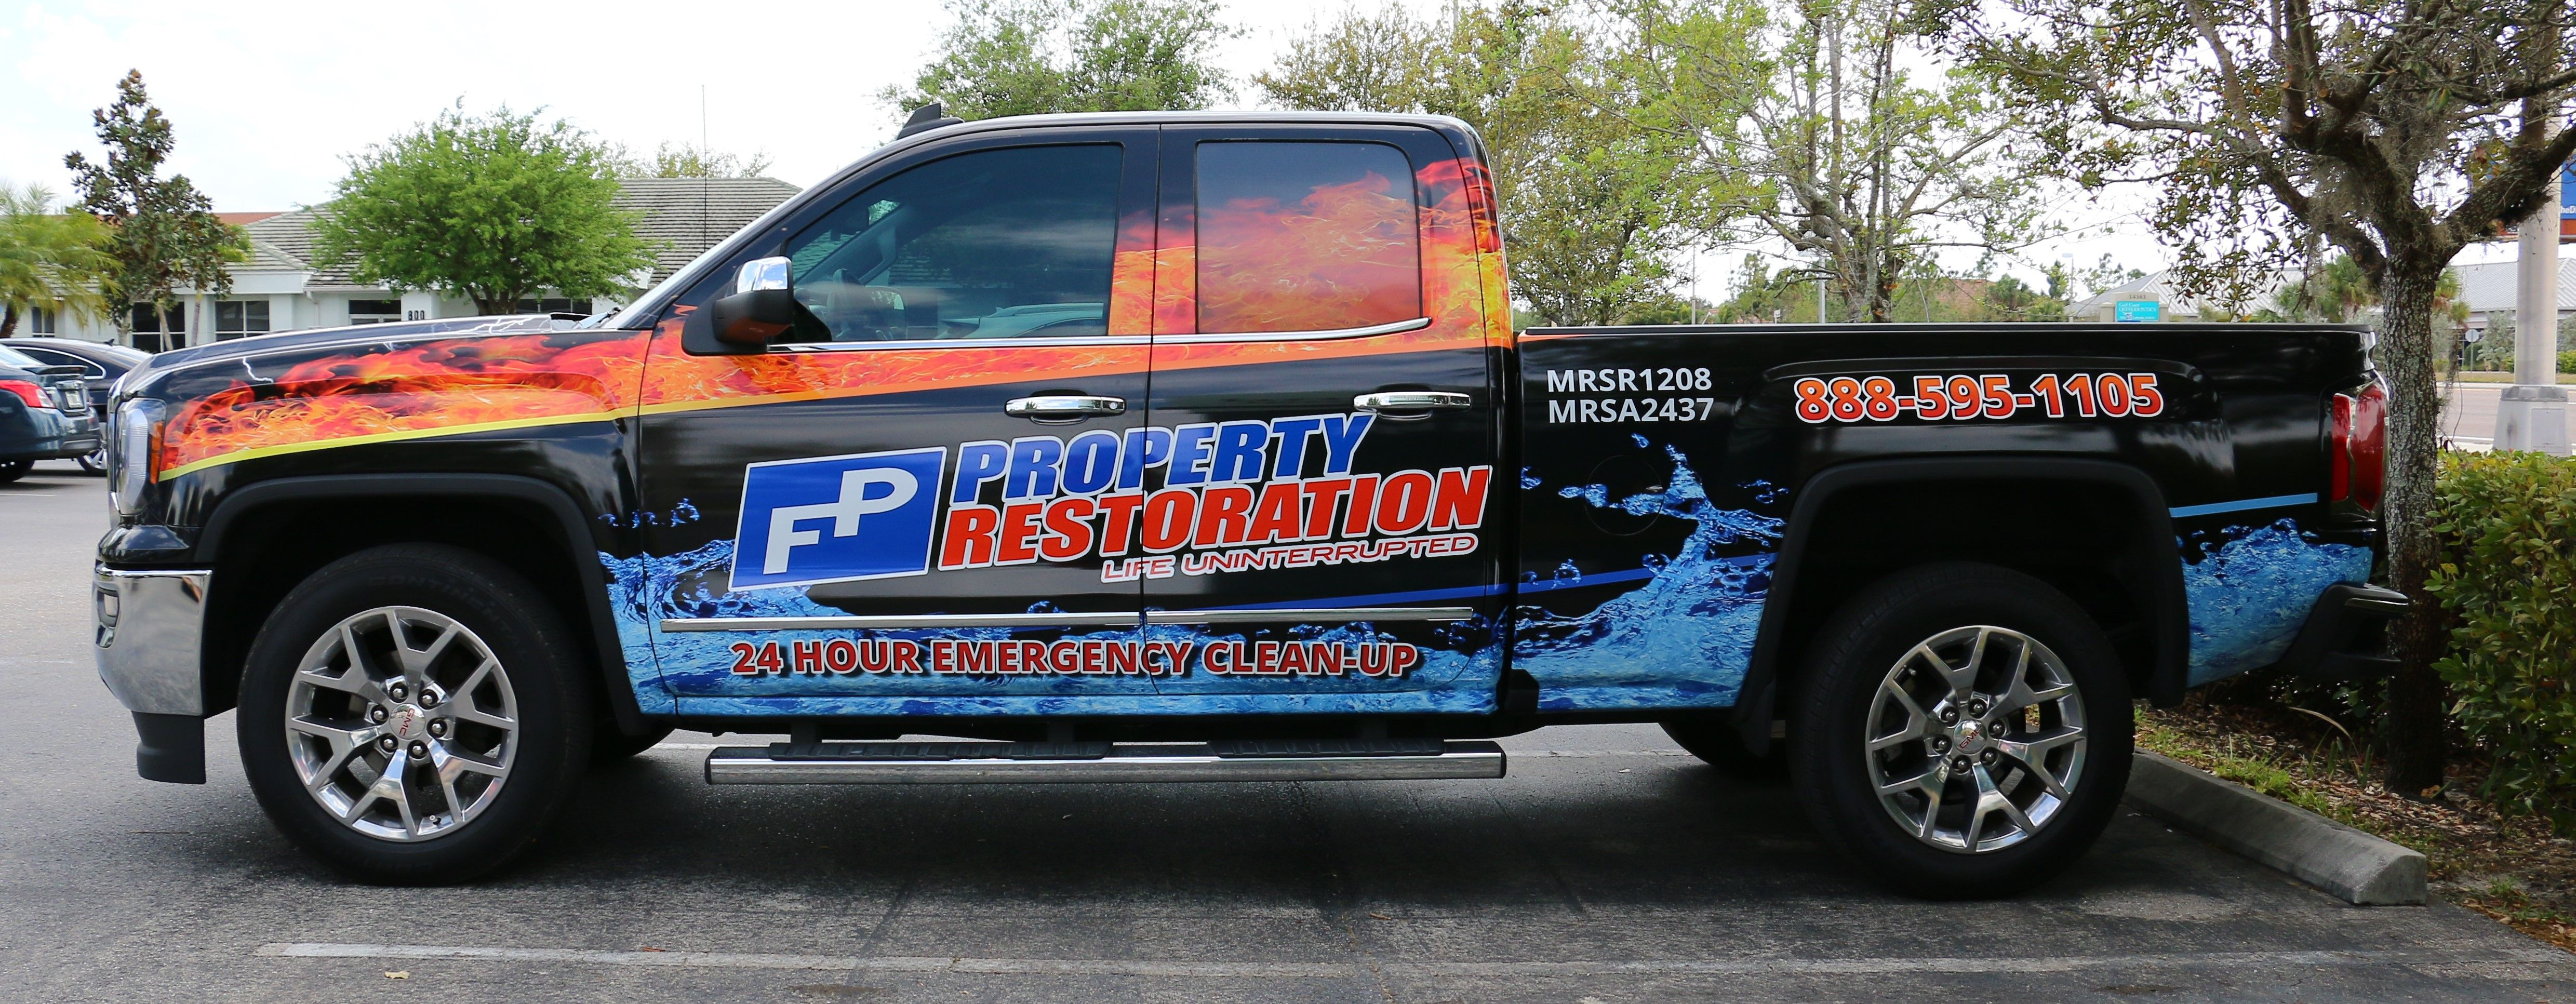 WaterRemoval WaterExtraction FireDamage